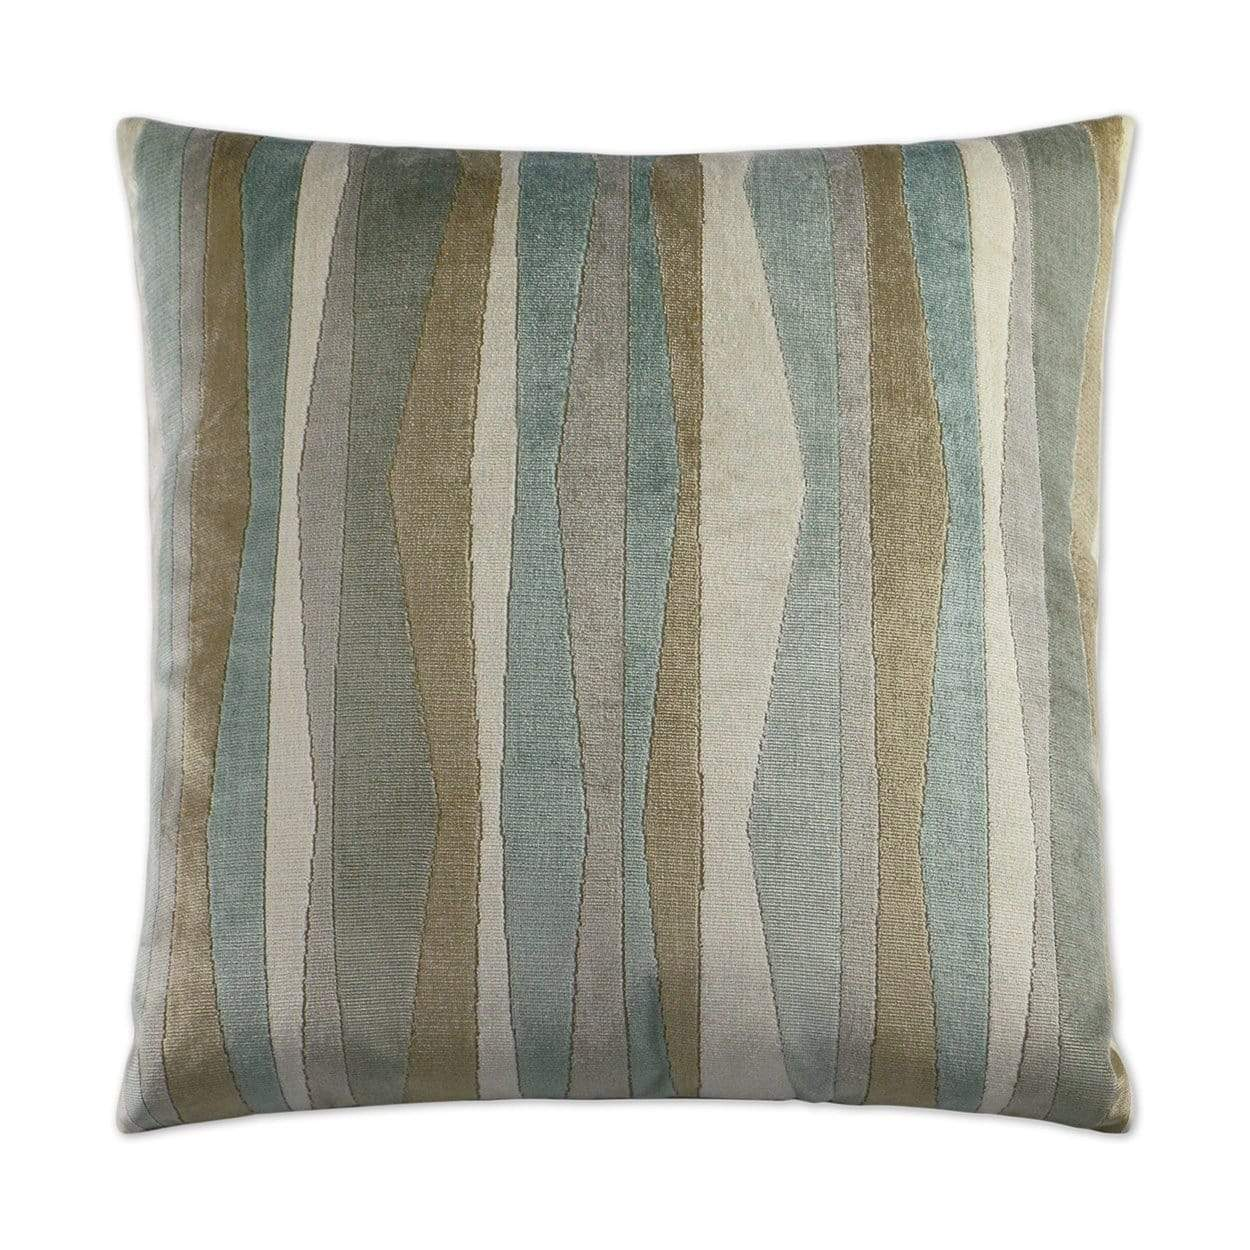 D.V. Kap D.V. Kap Layers Pillow 2945